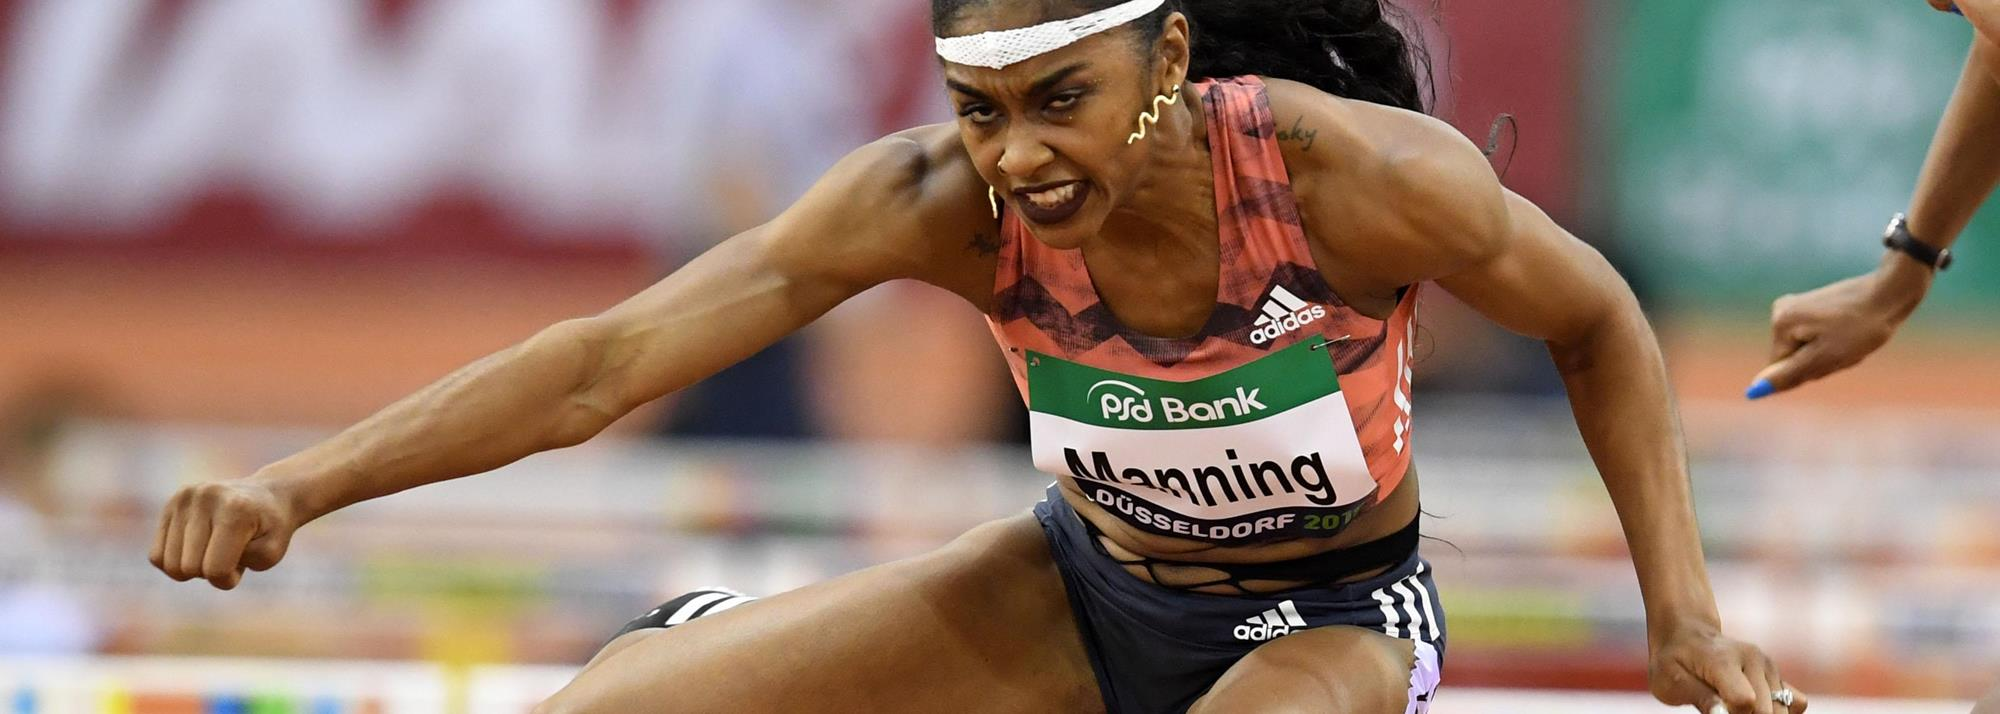 World indoor medallists Clemons and Eaton confirmed for Dusseldorf